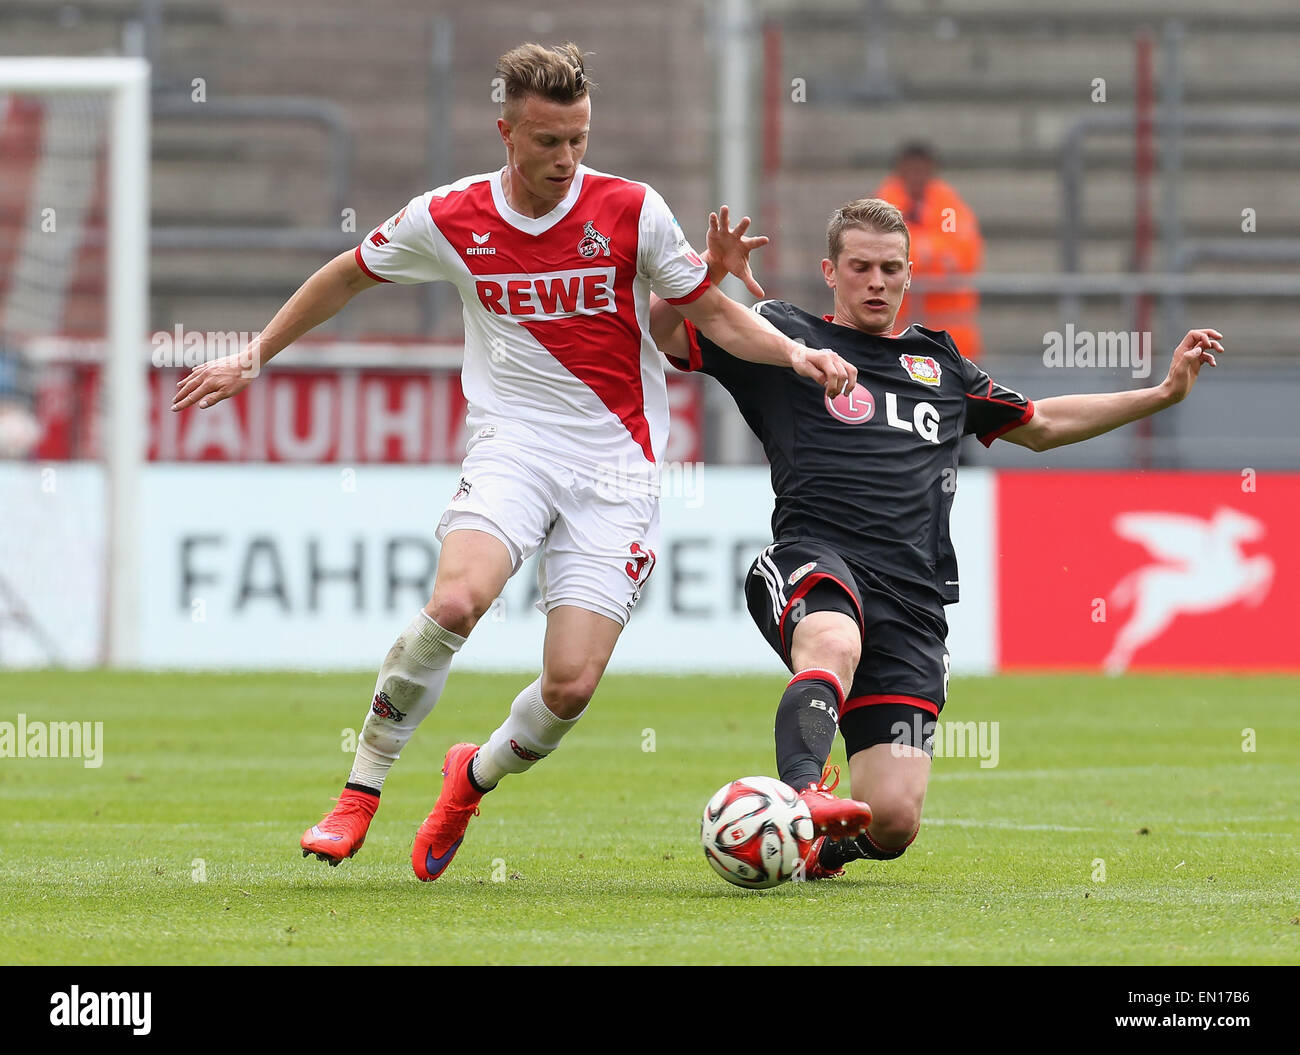 Cologne, Germany, 25Apr 2015. Bundesliga, 1. FC Koeln vs Bayer Leverkusen. Tackling between Yannick Gerhardt (Koeln, - Stock Image